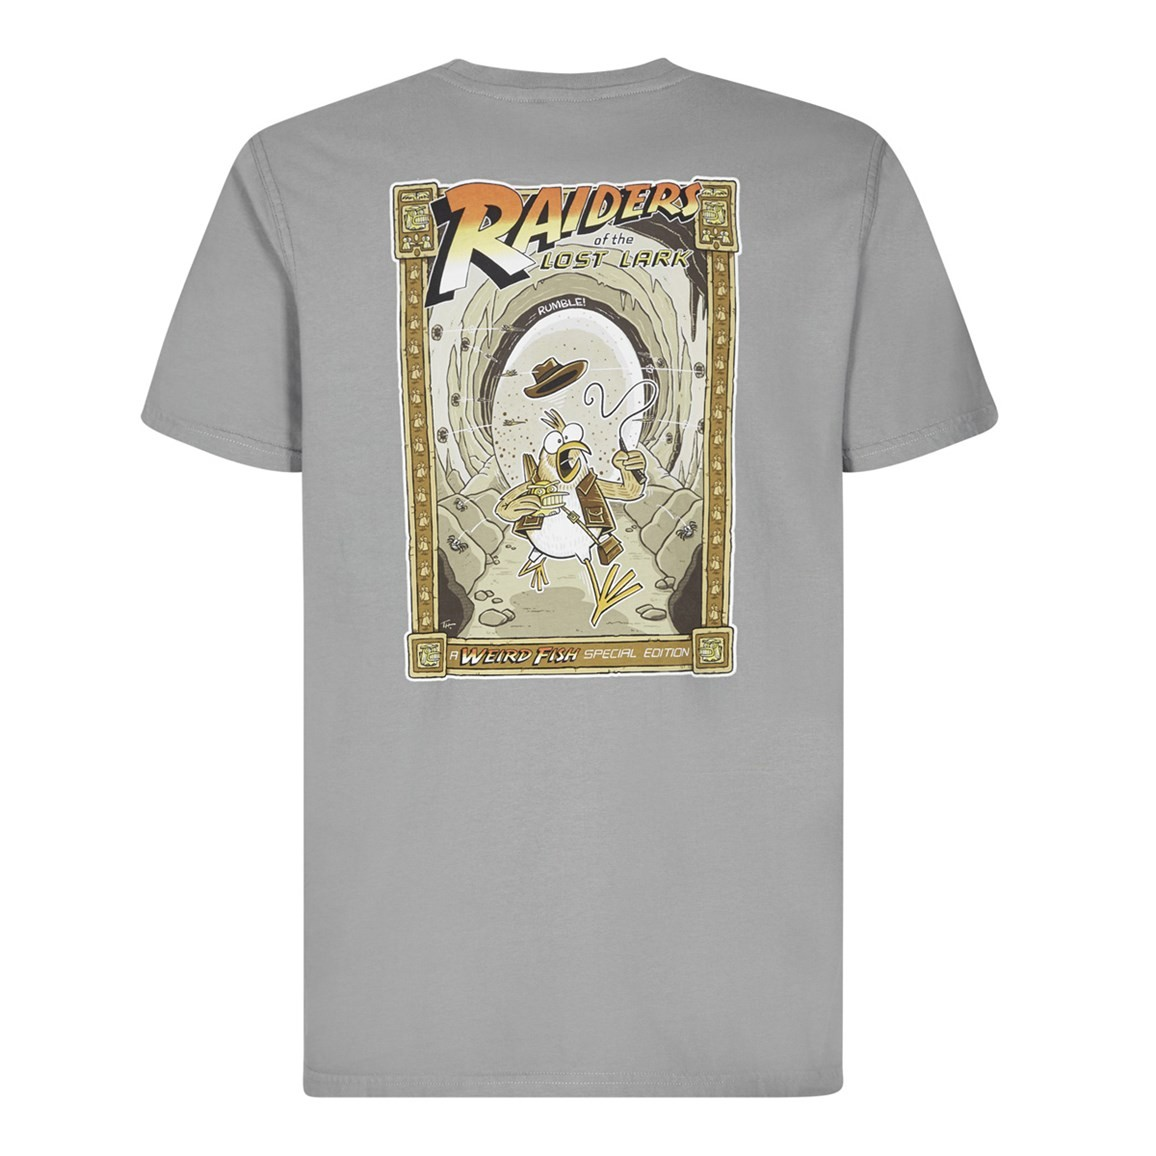 Image of Weird Fish Raiders Artist T-Shirt Frost Grey Size L